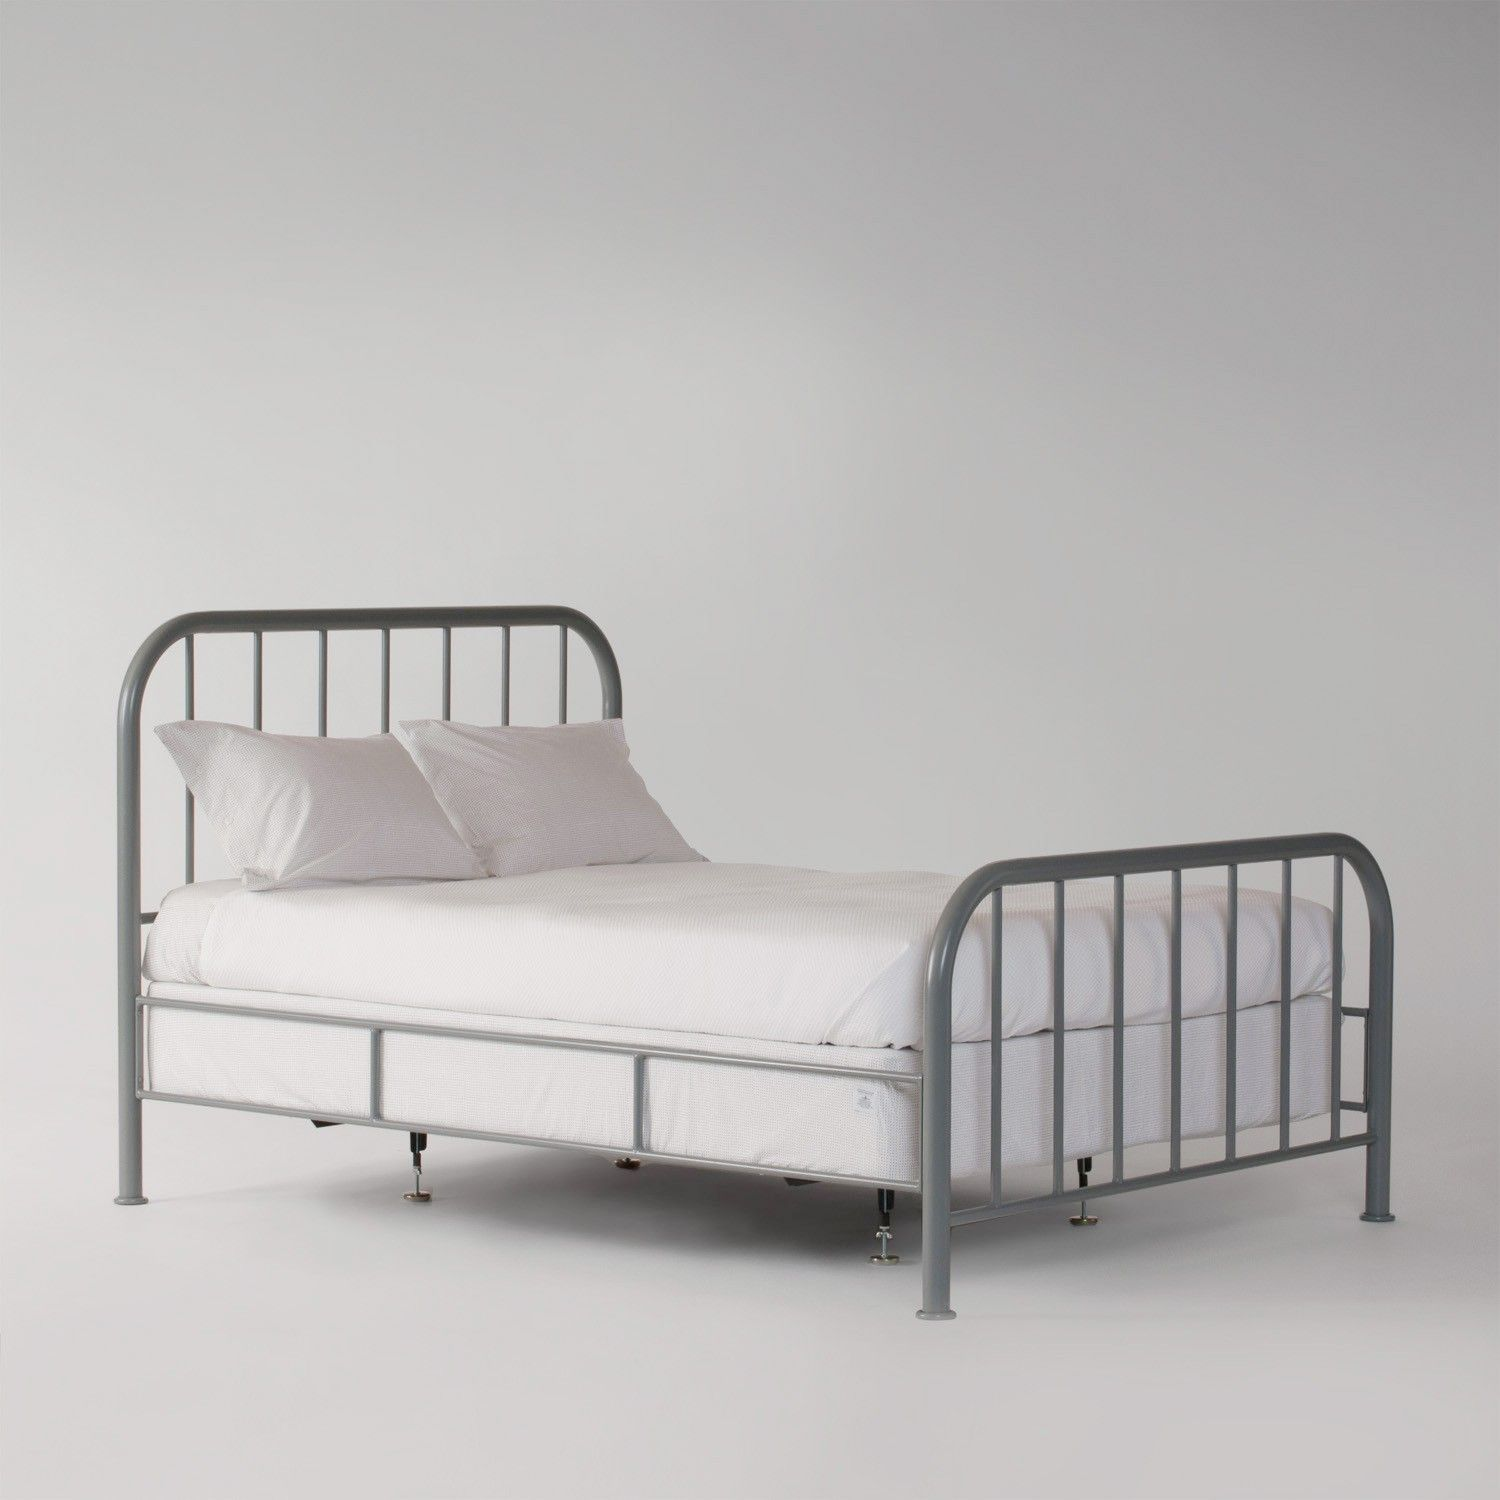 Image of: Steel Bed Frame Twin Xl